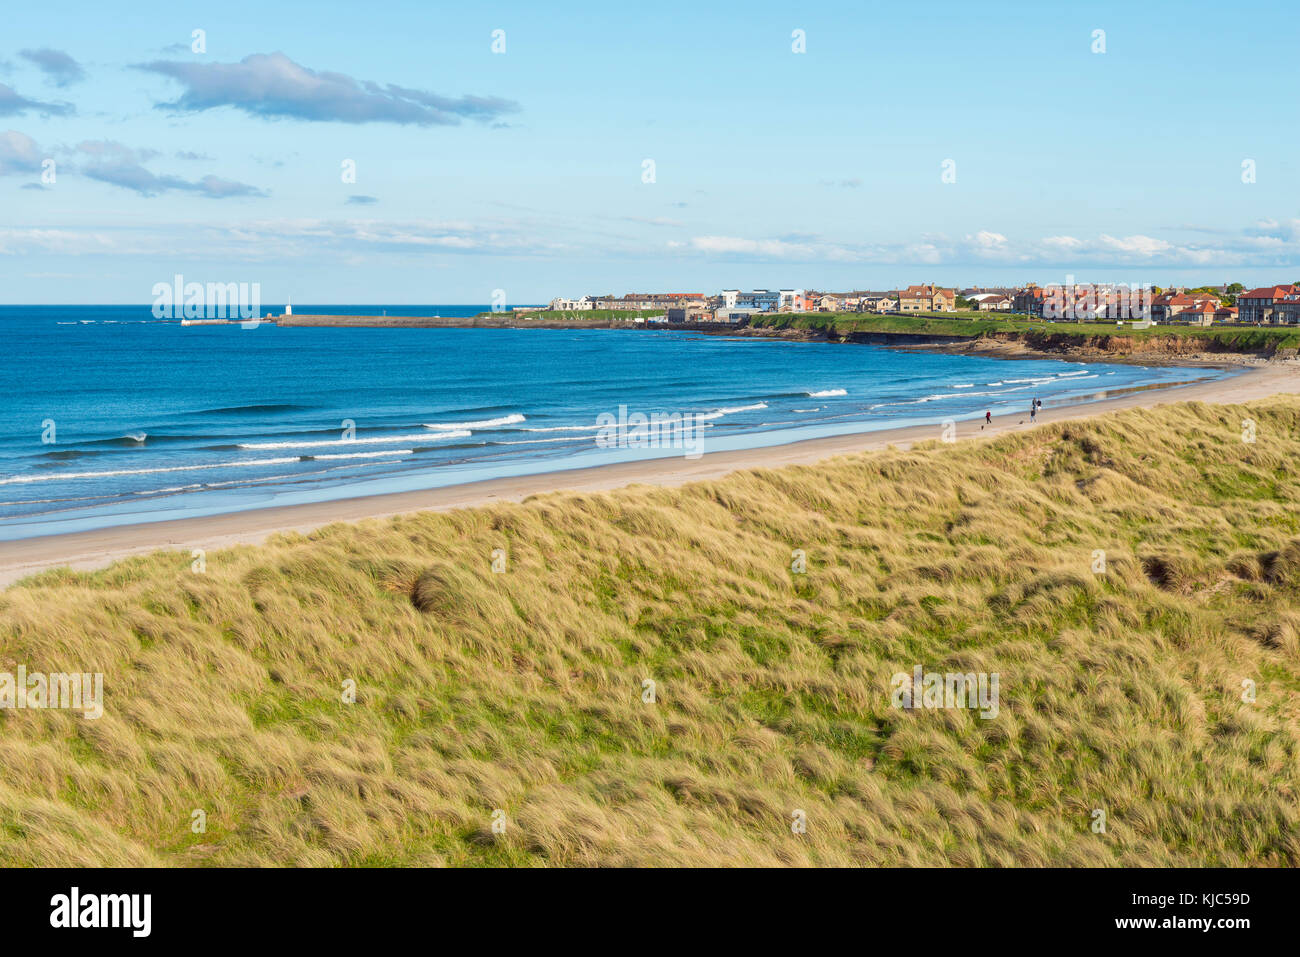 Grassy dunes and beach along the North Sea, town of Seahouses in the background in Northumberland, England, United - Stock Image